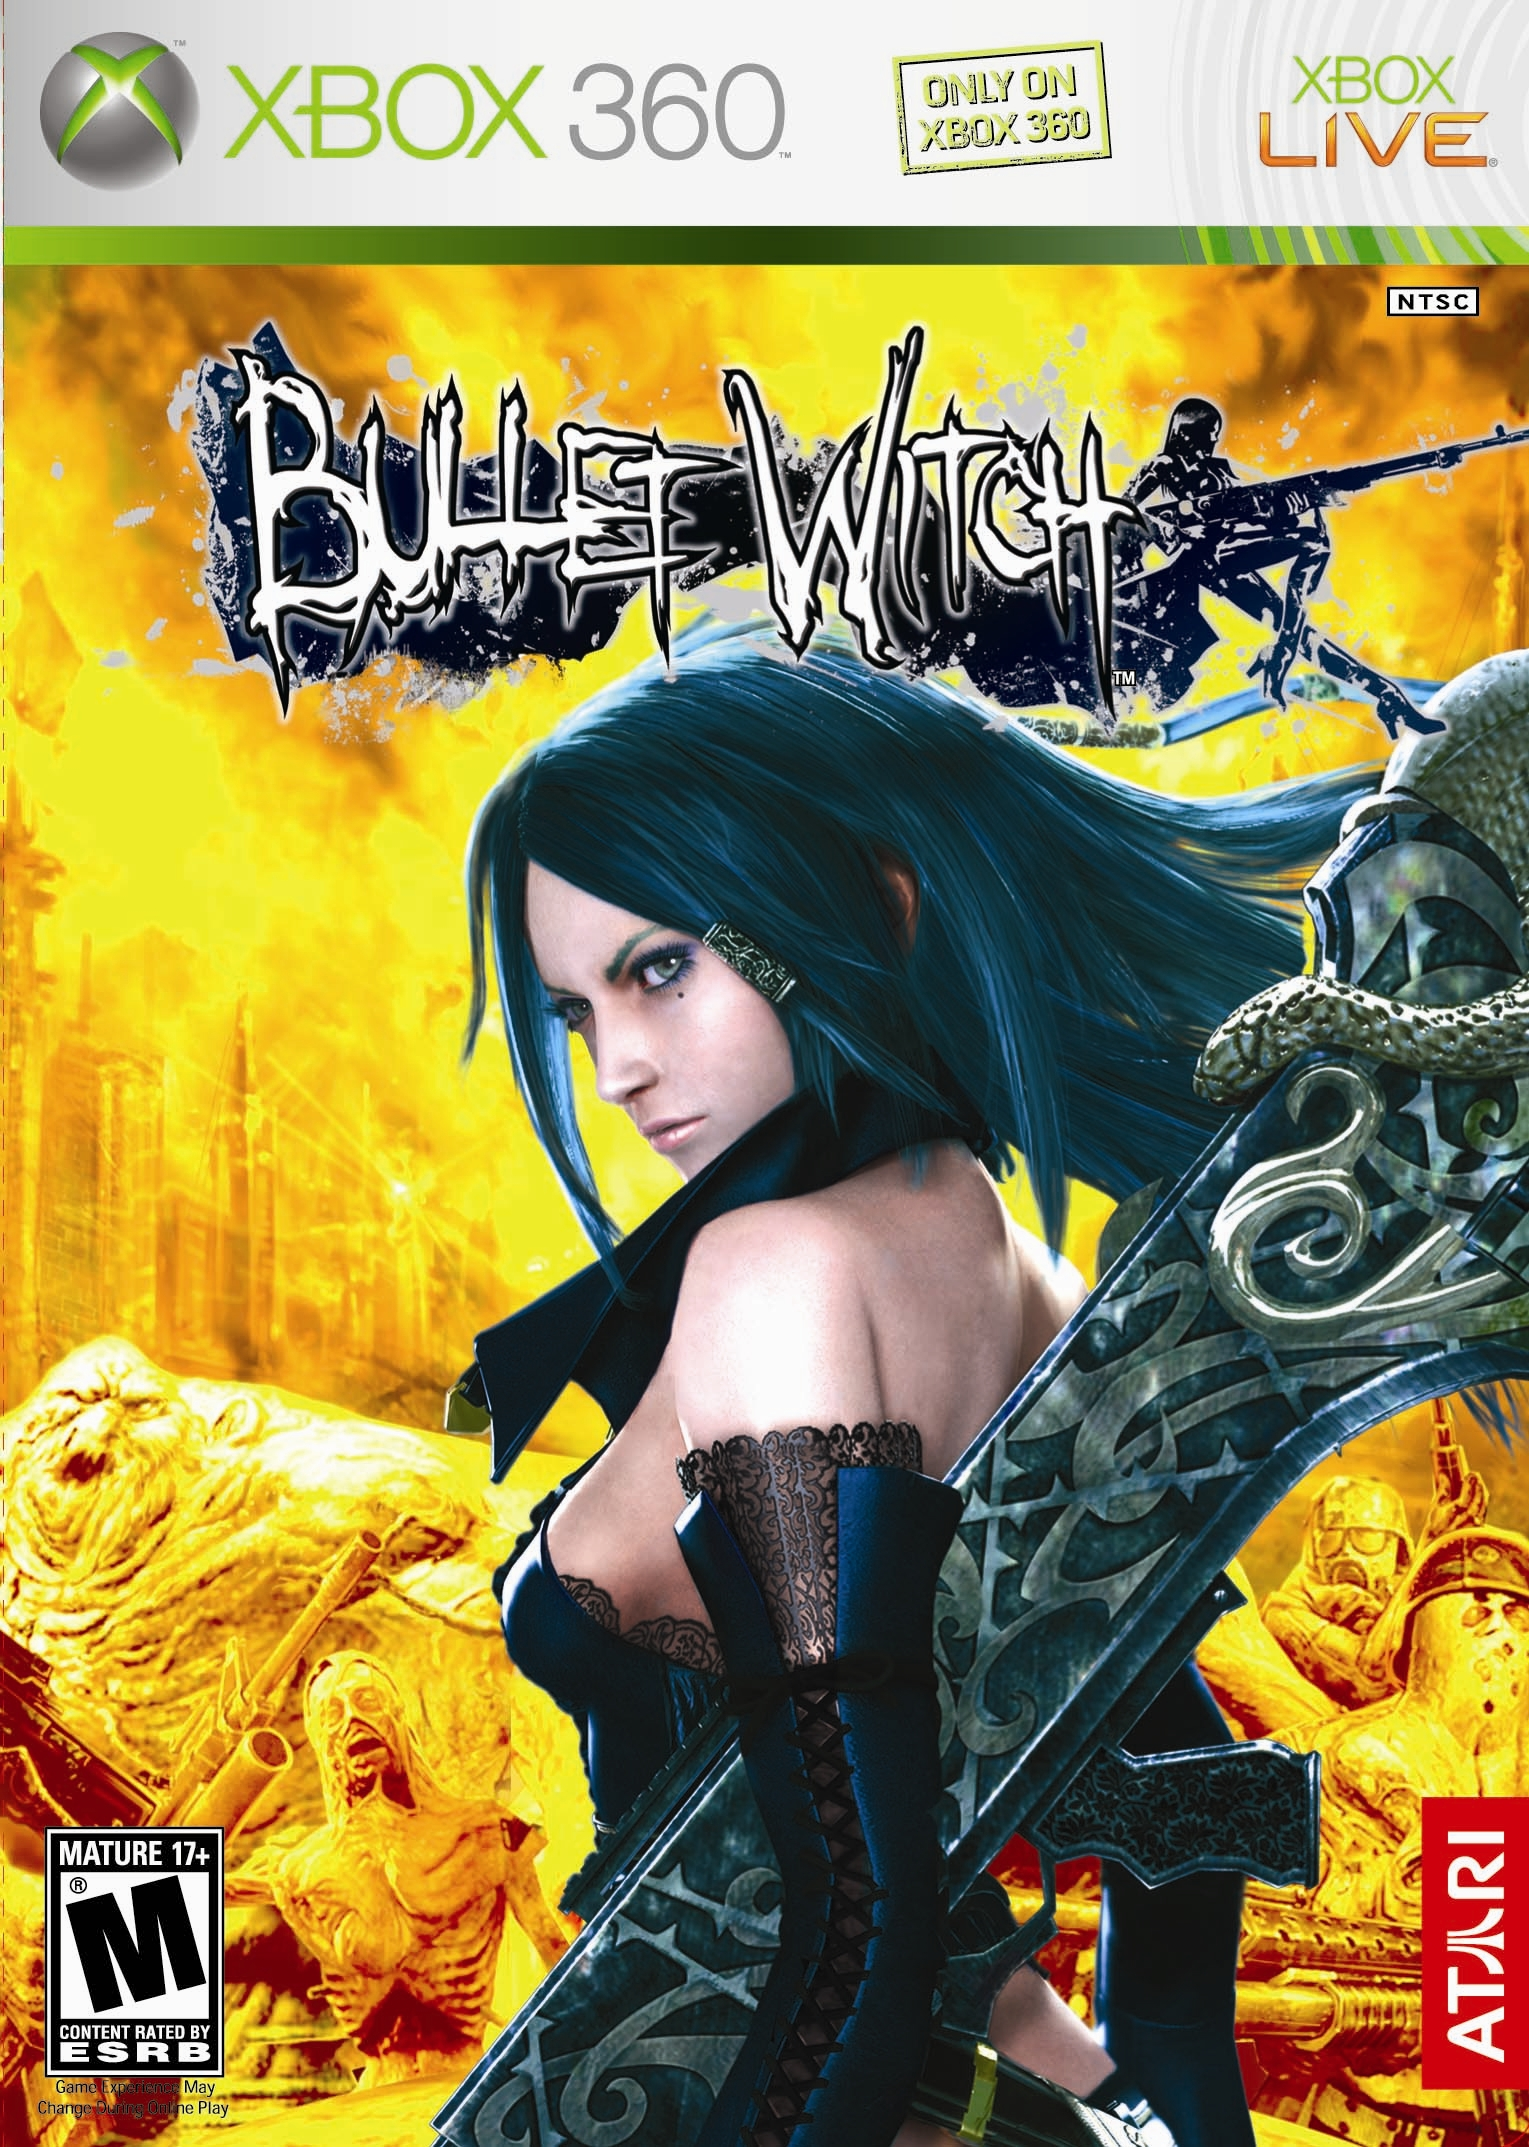 Bullet witch nude cheats erotic photos